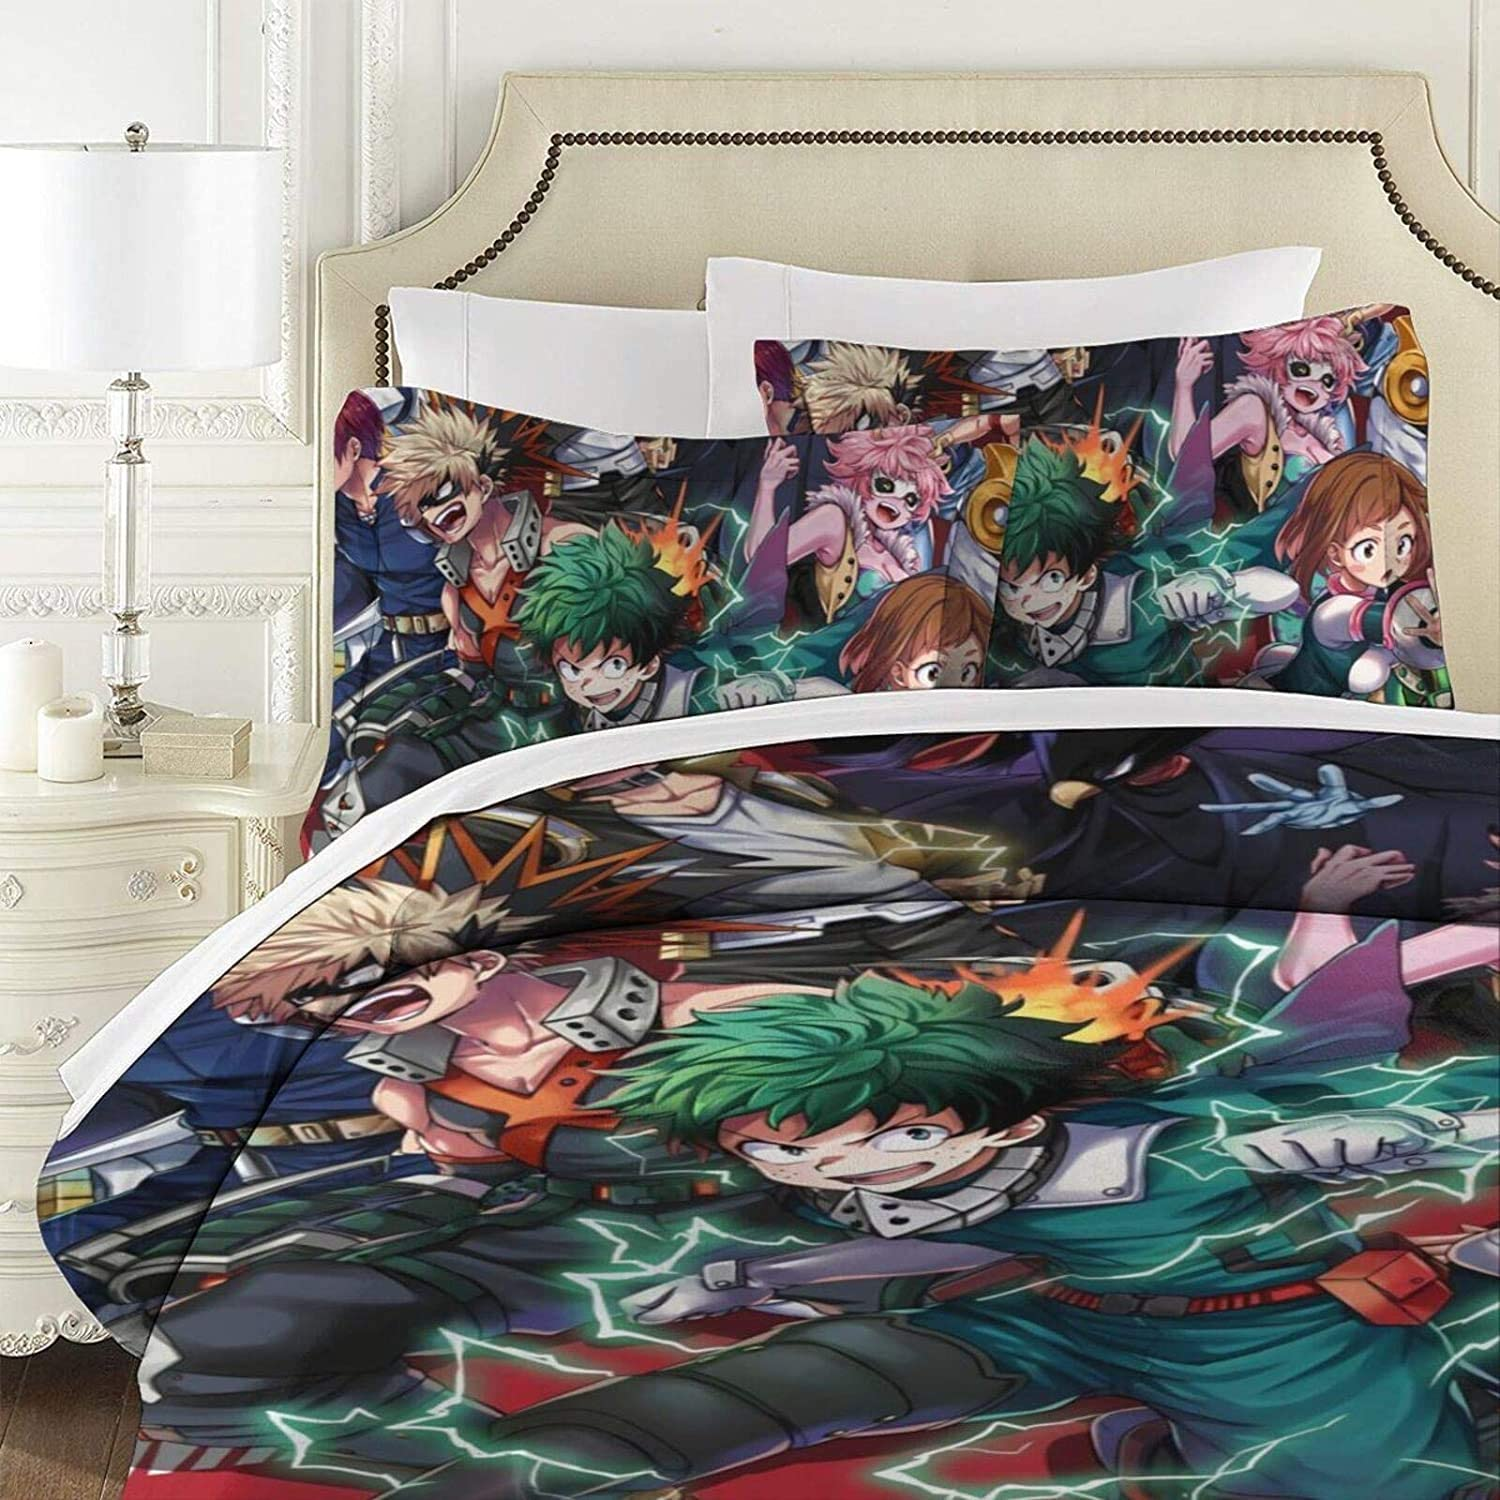 No Comforter ZYLD My Hero Academia Bed Set Twin Size 3D Anime Bedding Sets 3pcs Duvet Cover Set for Boys Child Teens Girls 1 Quilt Cover 2 Pillowcases